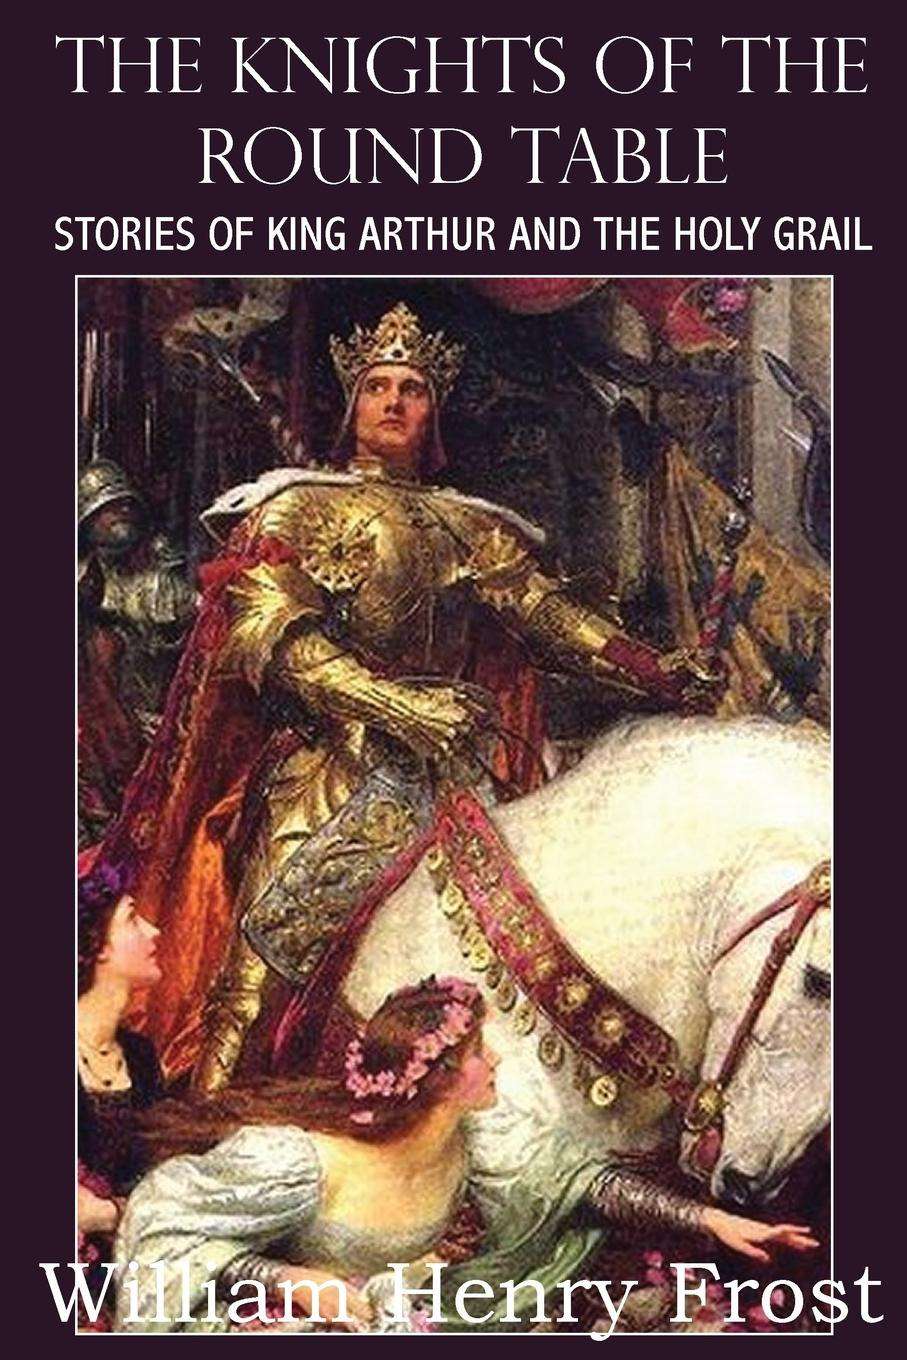 купить William Henry Frost The Knights of the Round Table, Stories of King Arthur and the Holy Grail по цене 1227 рублей